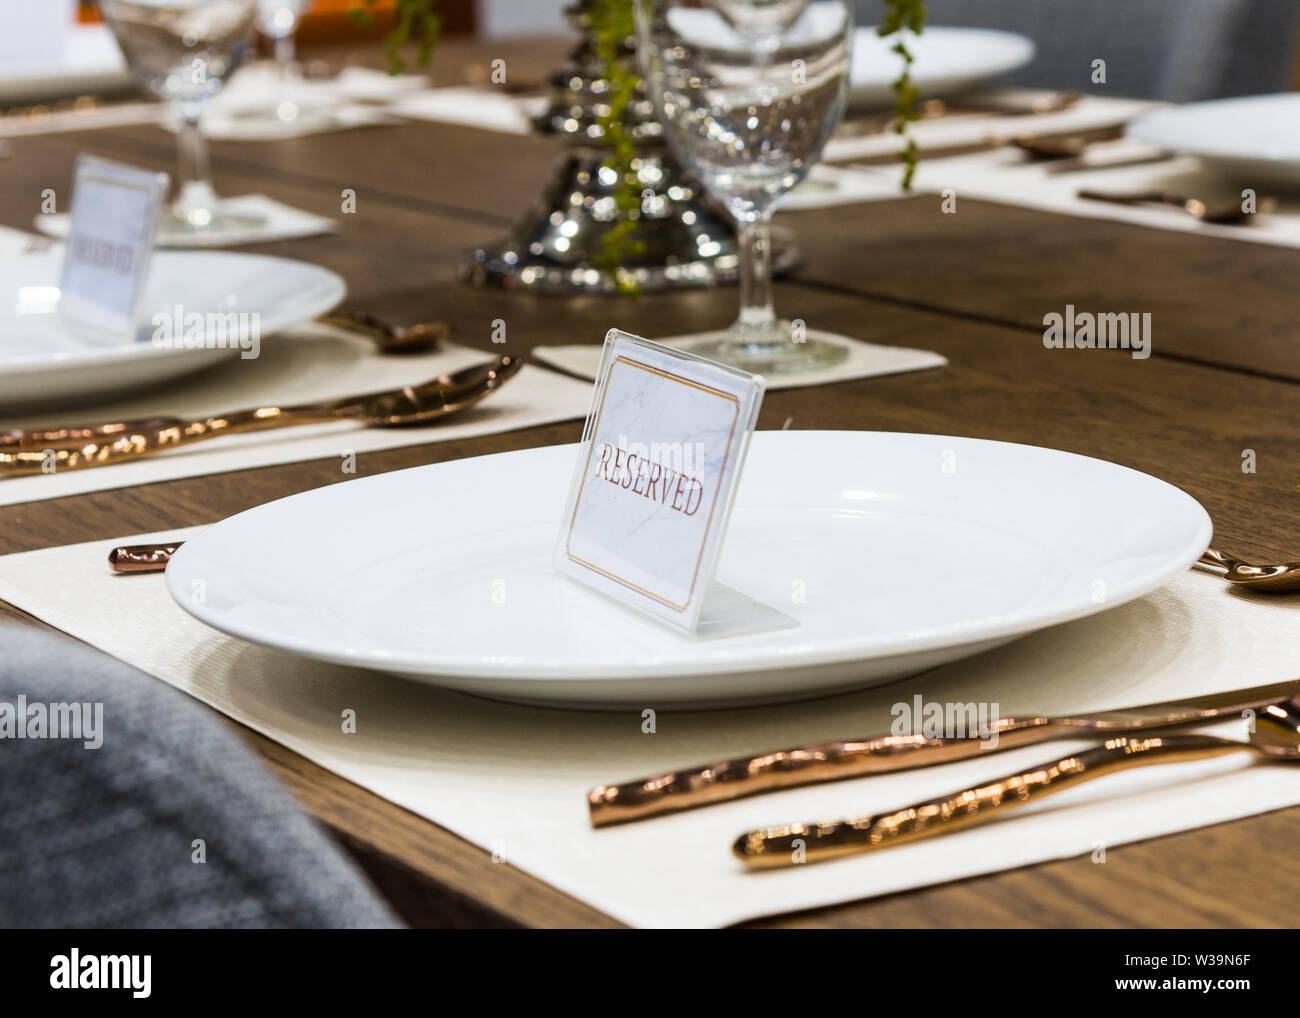 Reservation on a dinner table at the restaurant, plate reserve - Stock Image